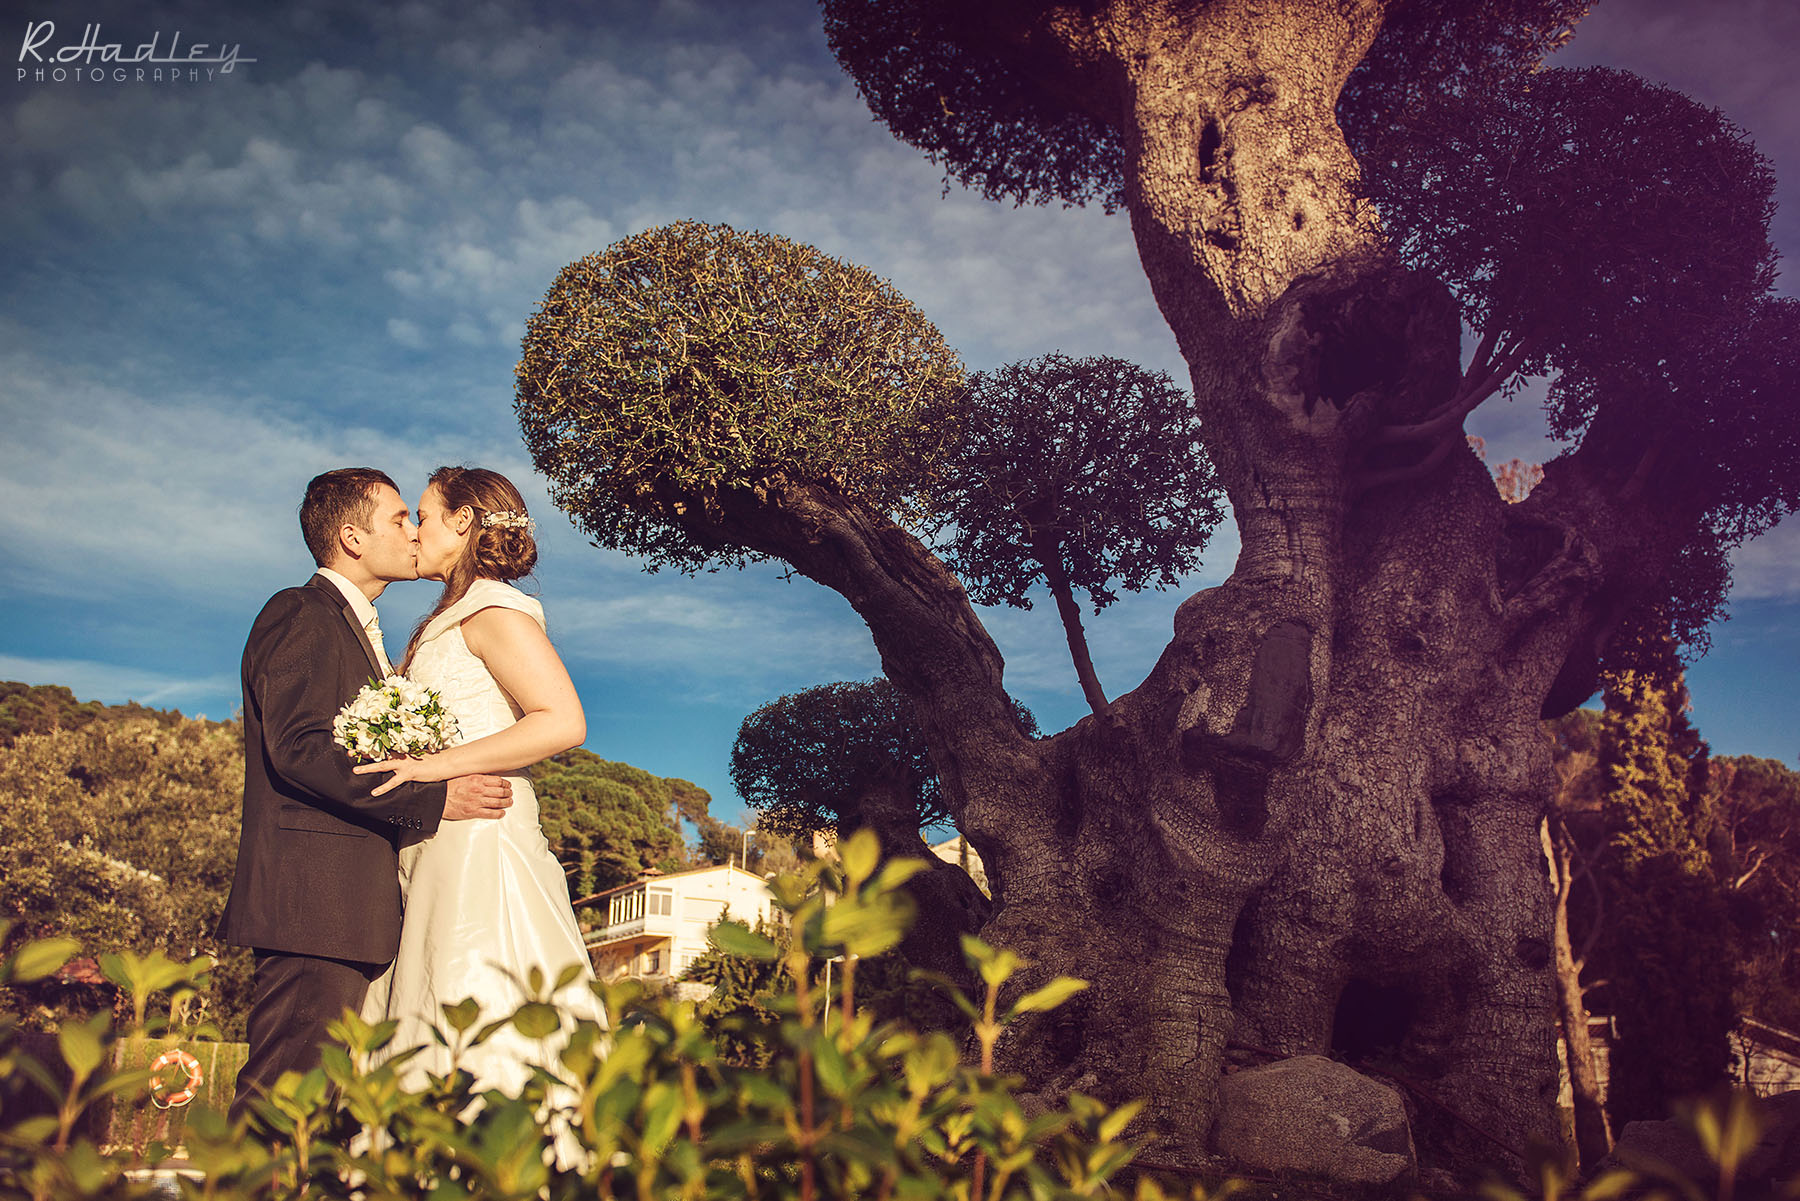 Wedding at the Hotel Can Galvany near Barcelona